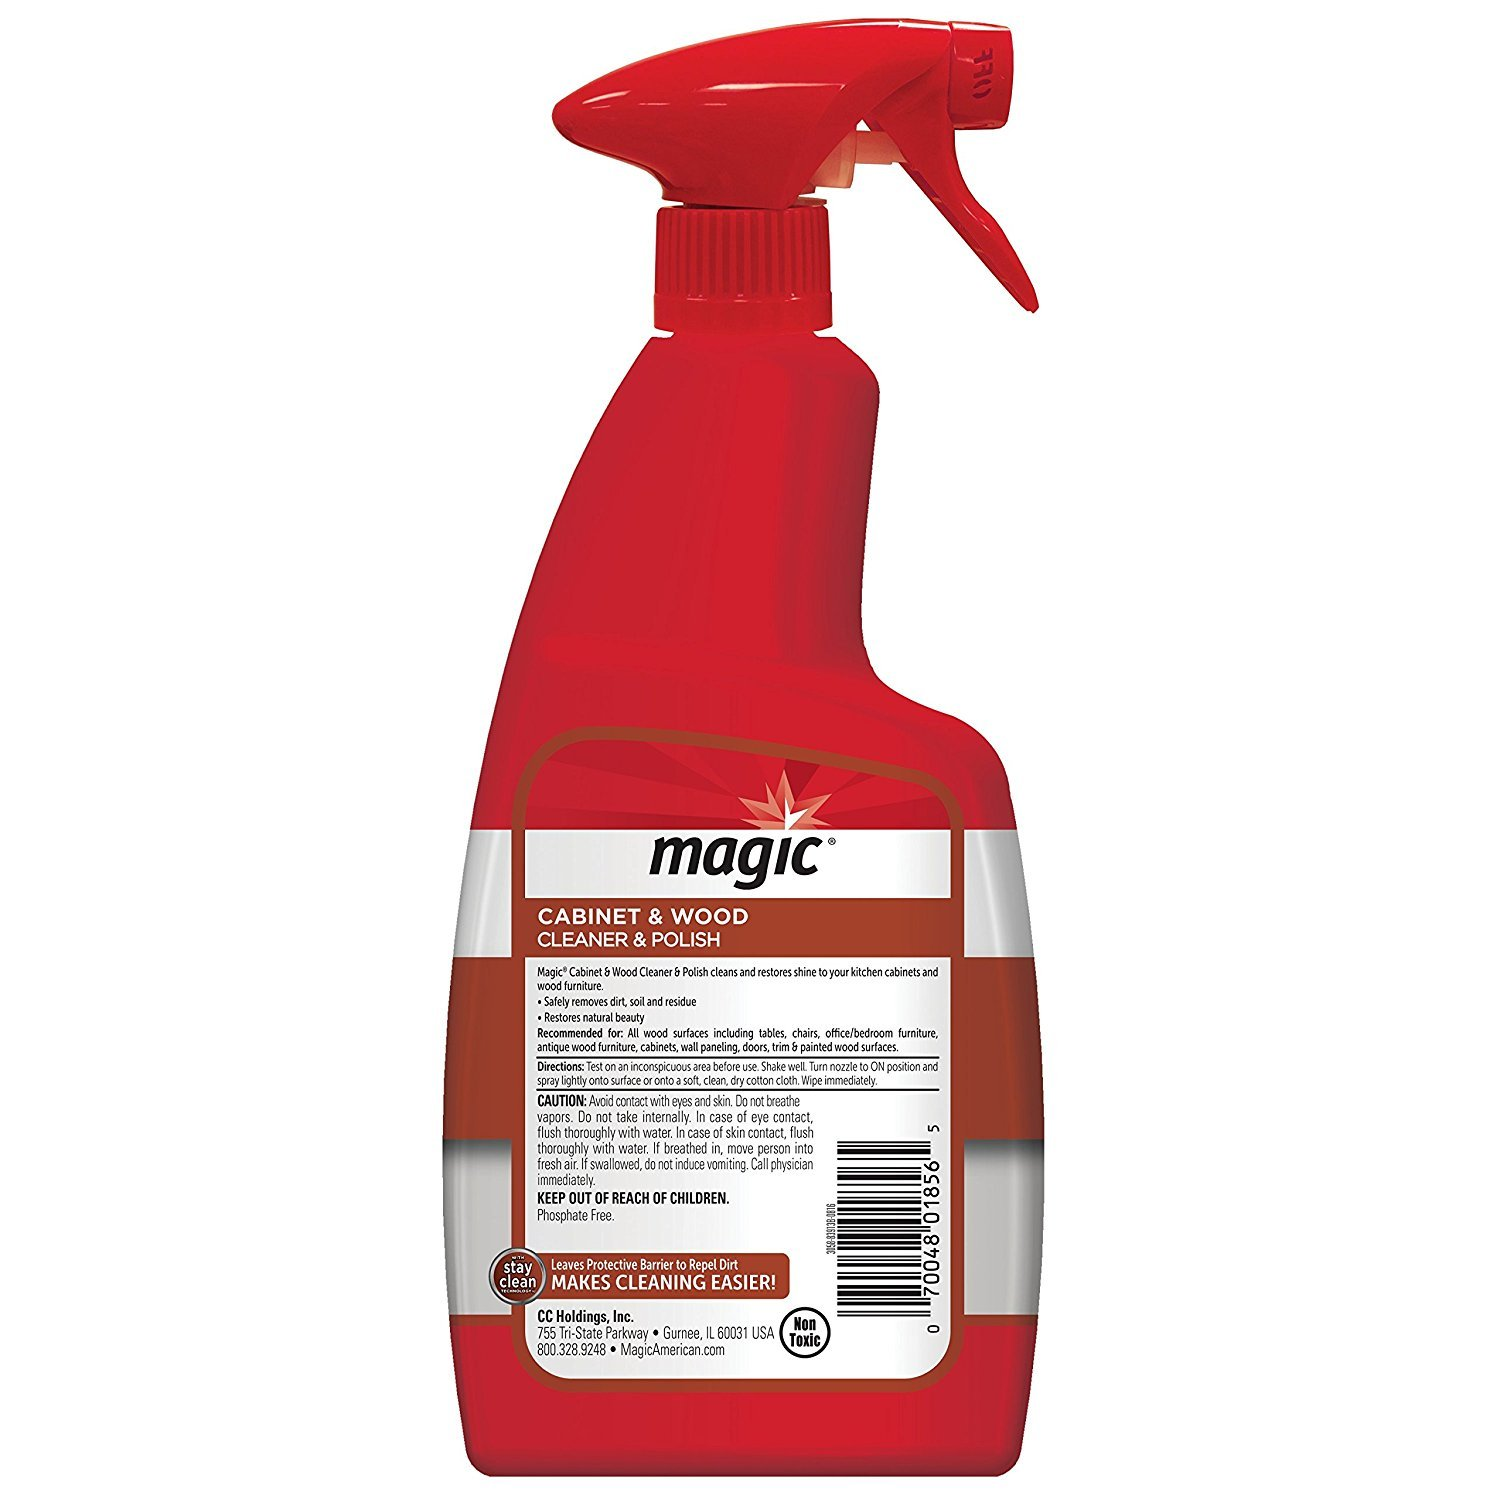 Magic Wood Cleaner and Polish - 24 Ounce - Use As Wood Furniture Cleaner, Wood Cabinet Degreaser, Wood Table Restorer, Wood Conditioner and Polish by Magic American (Image #2)